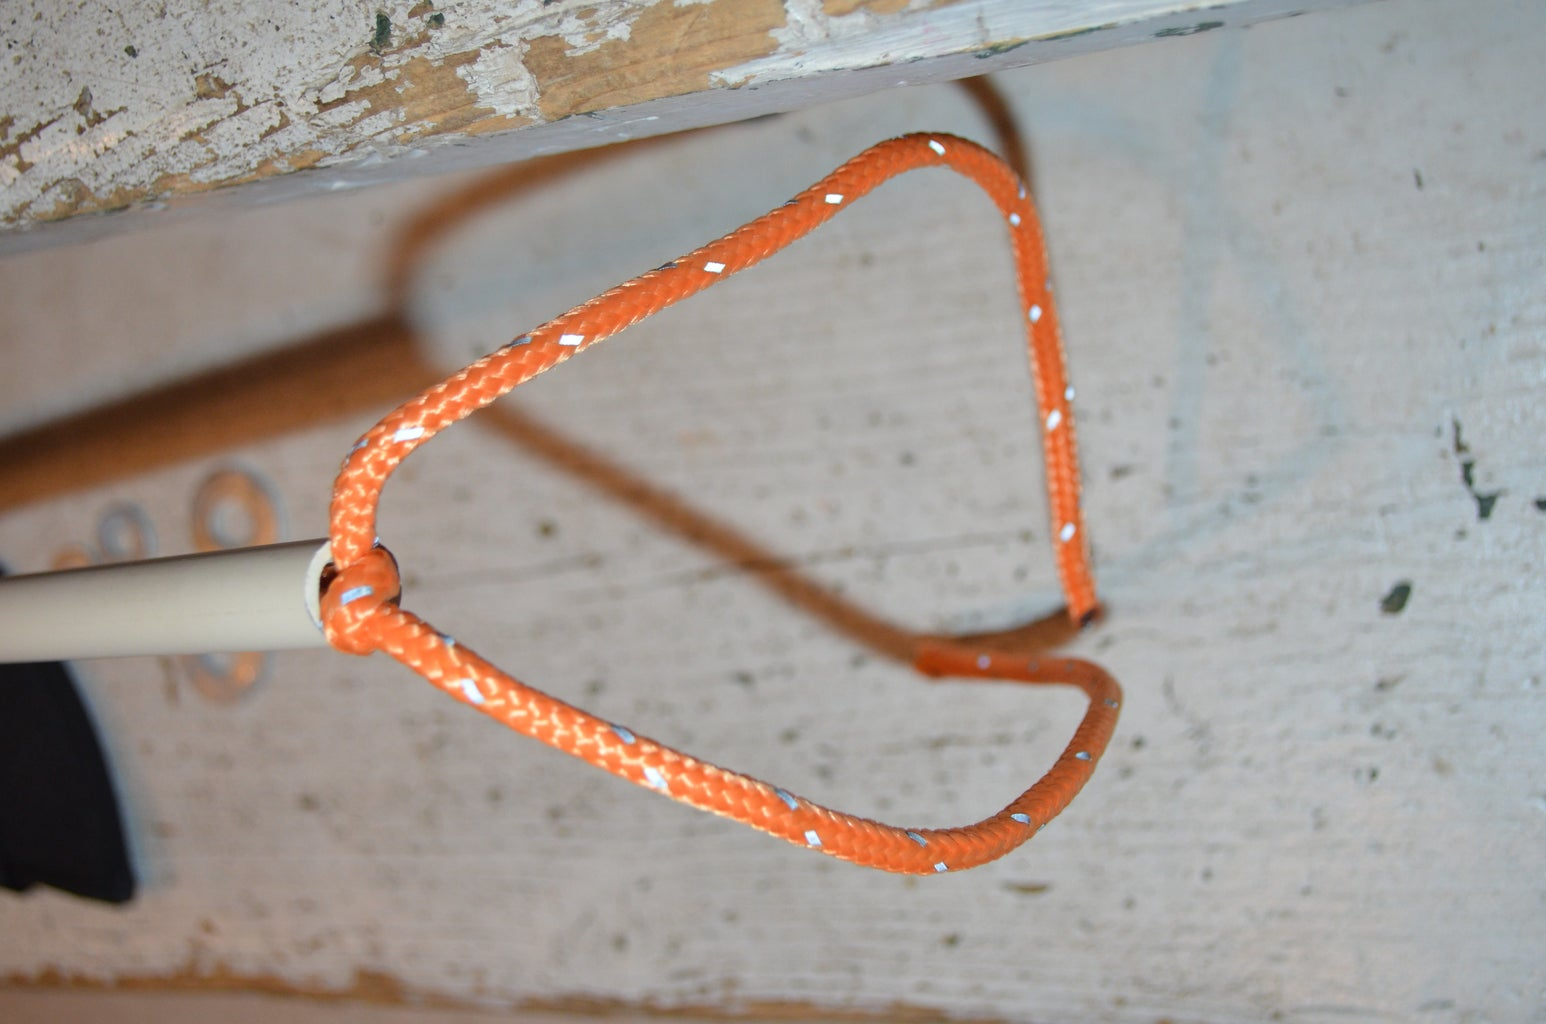 Attach Carabiners.